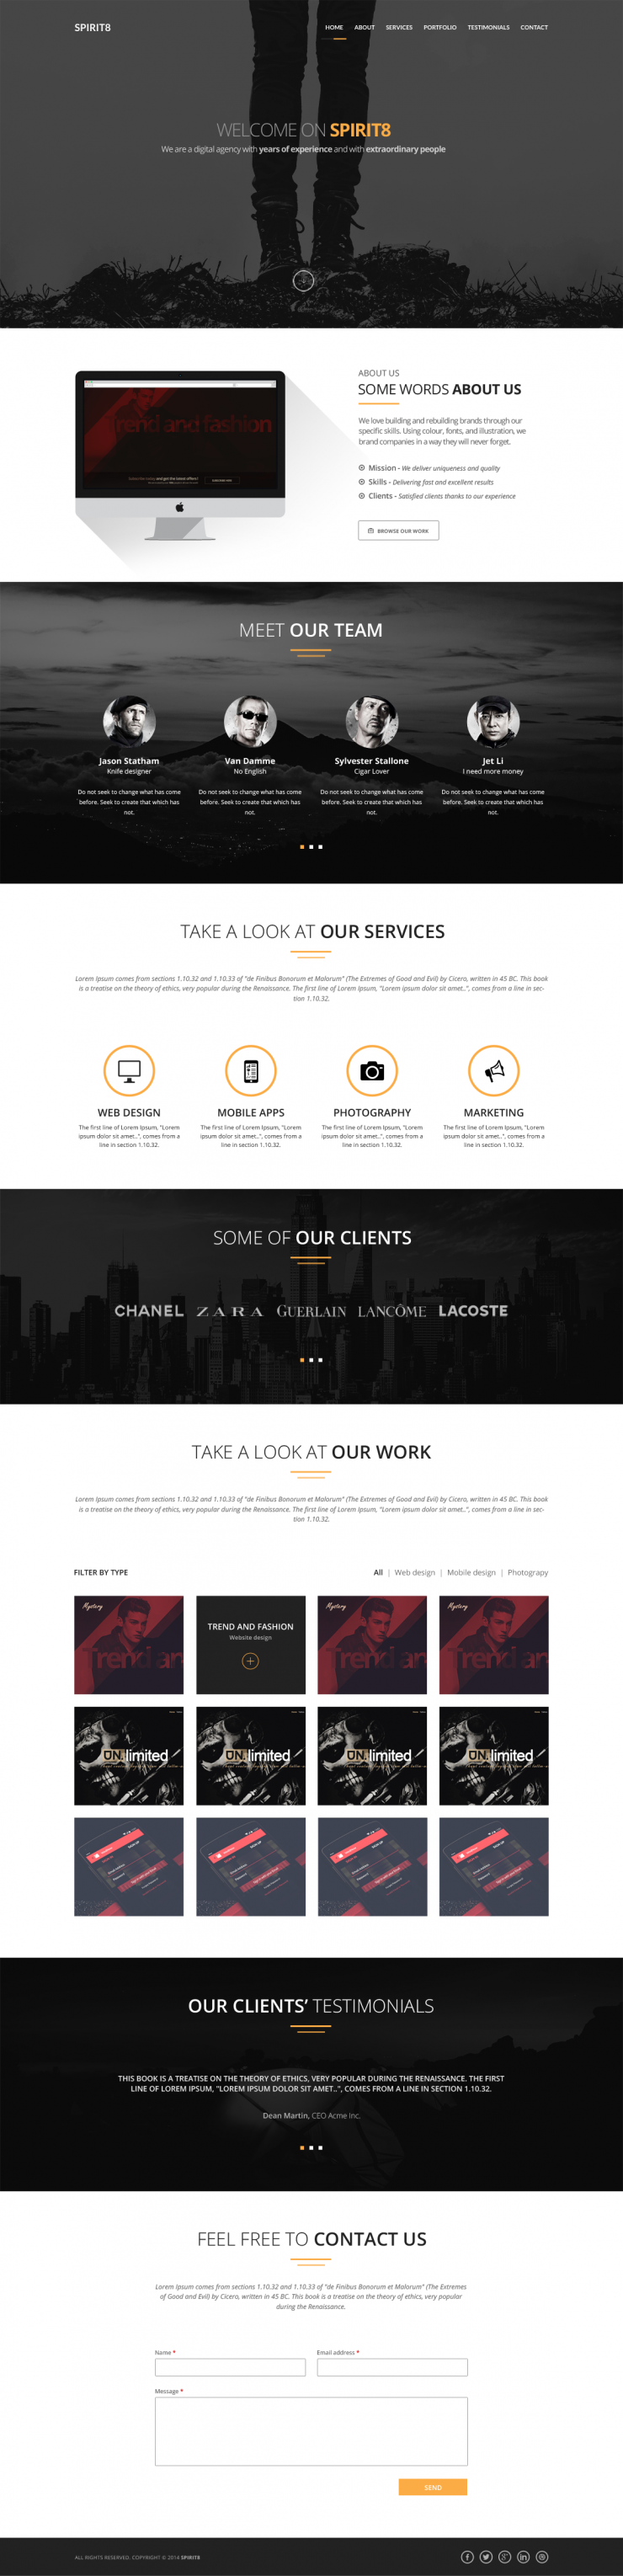 Digital Agency One Page Template PSD www White Website Template Website Layout Website webpage Web Template Web Resources web page Web Layout Web Interface Web Elements Web Design Web User Interface UI Template Single Page Simple Scroll Resources Psd Templates Portfolio Personal one page Fresh flat style Flat Elements Digital Corporate company Clean agancy